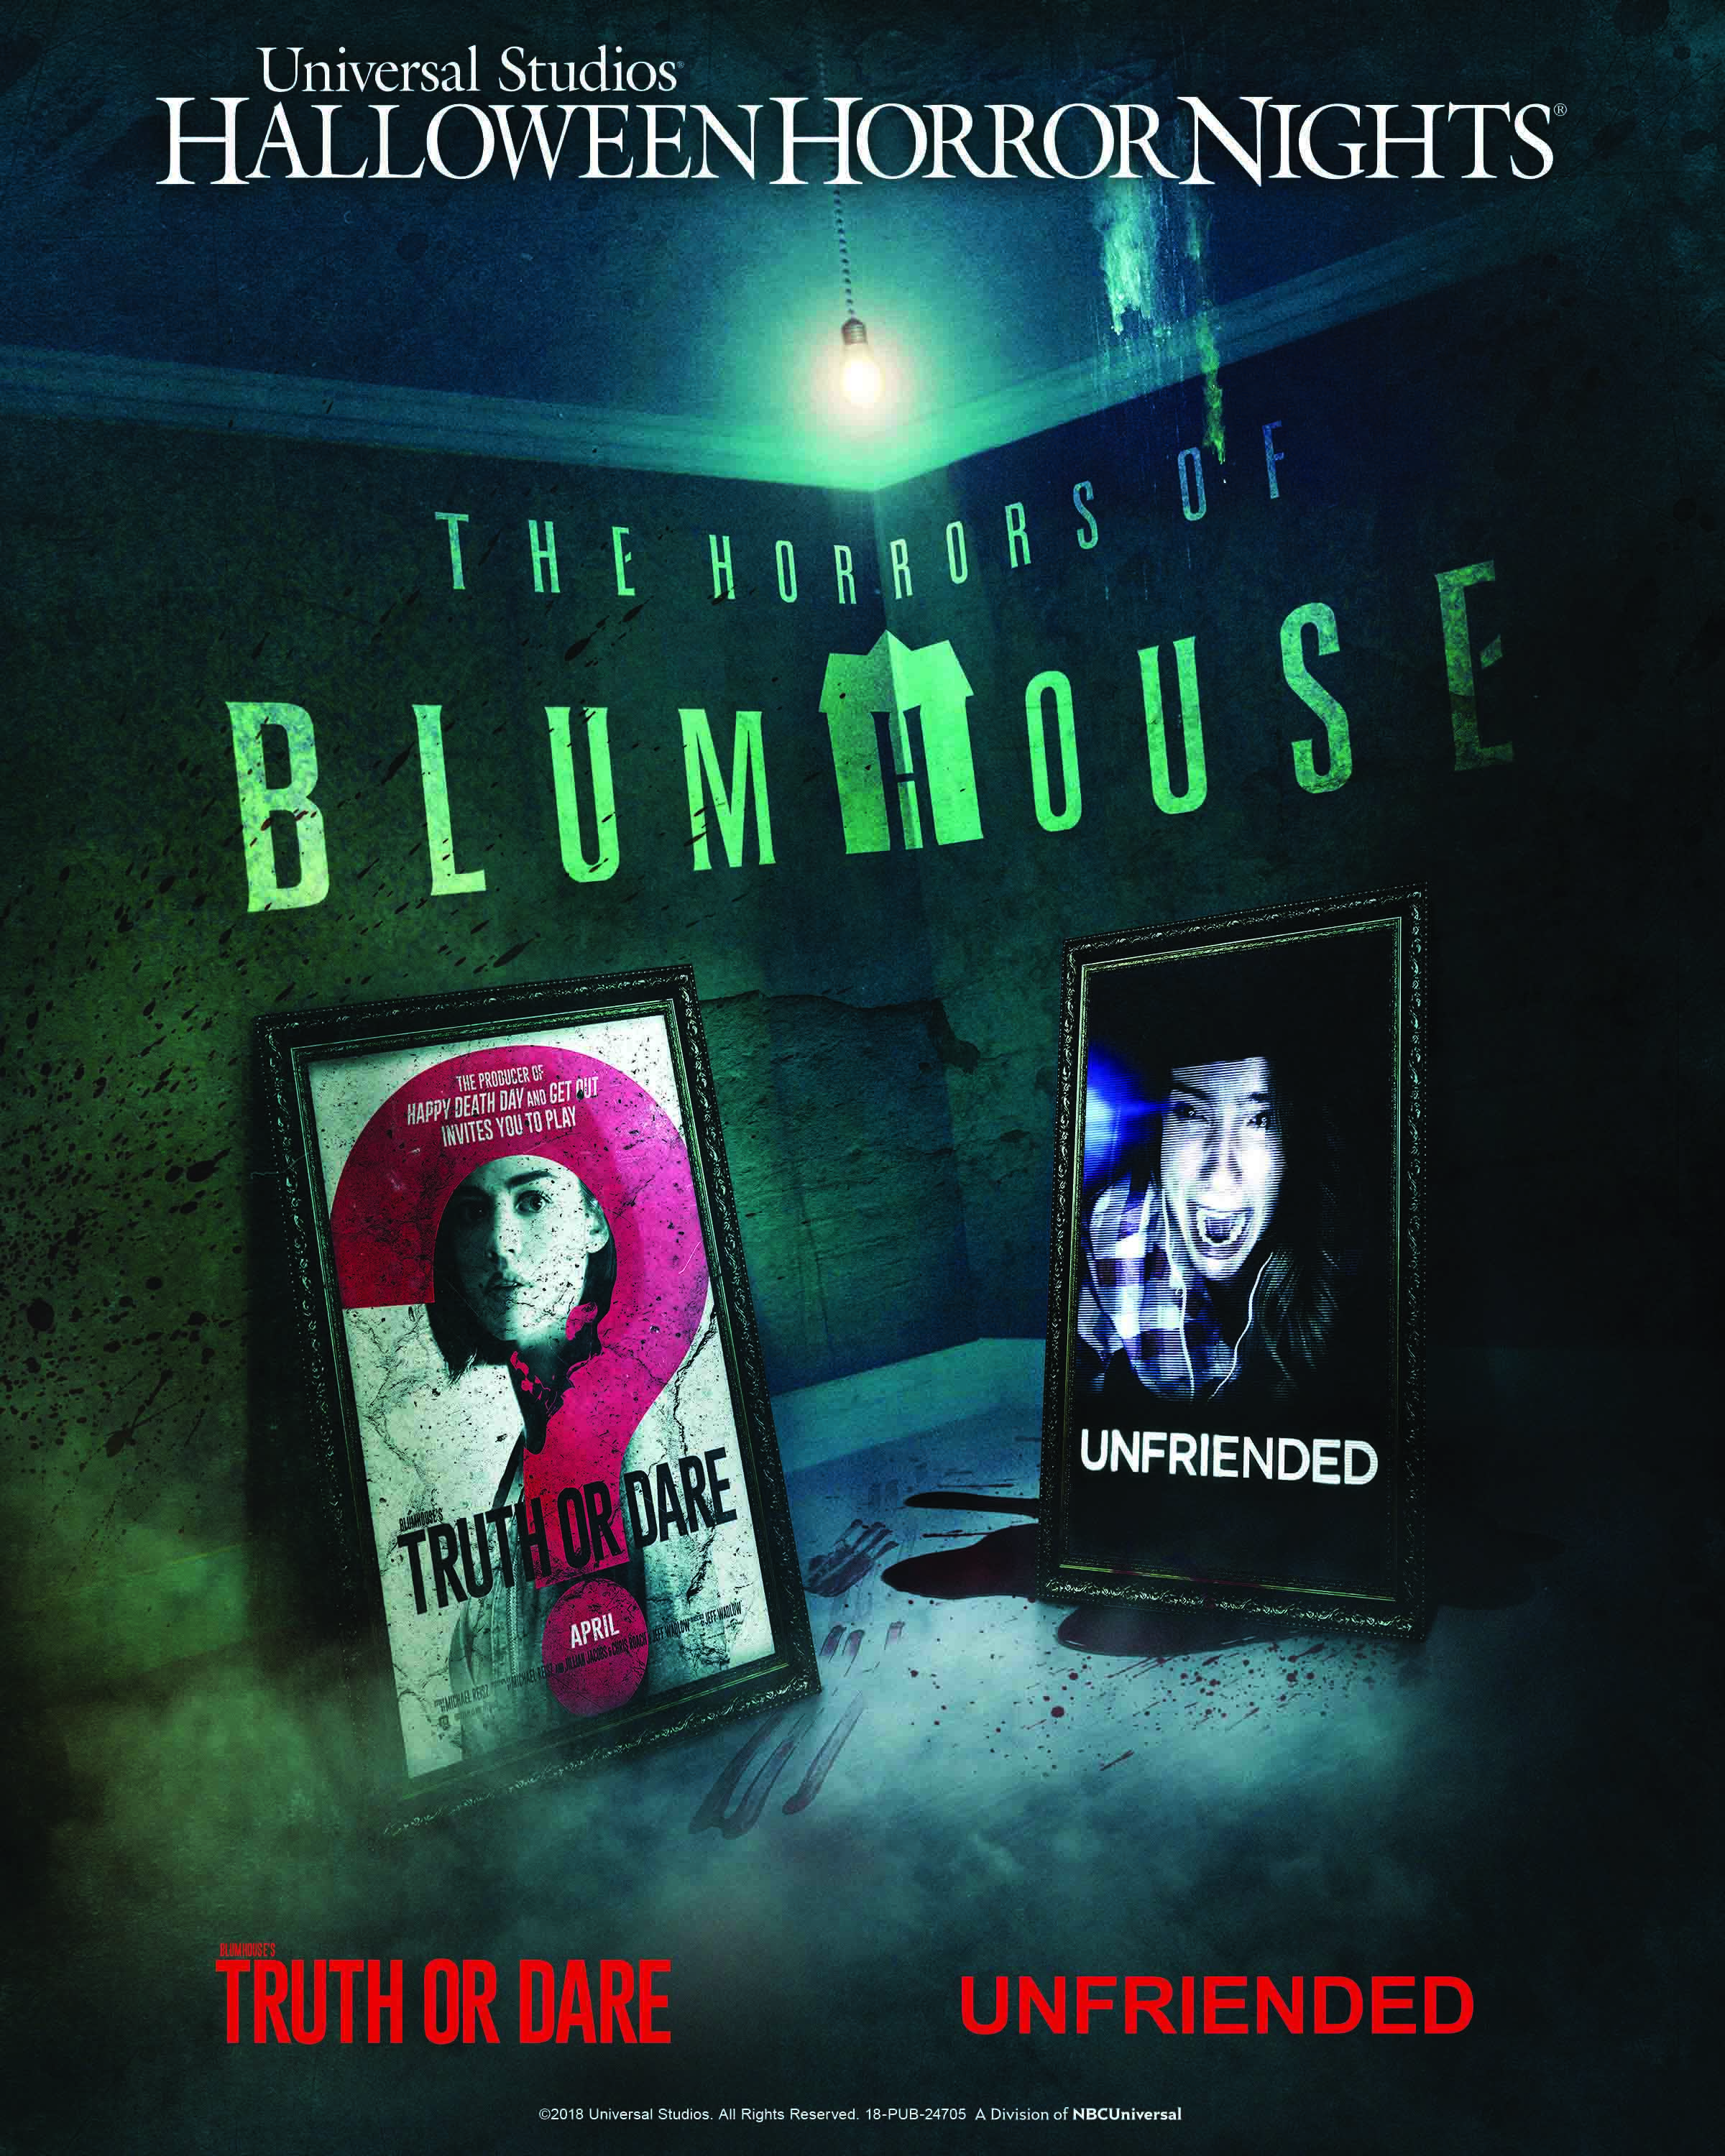 Universal's Horror Nights Brings the Horrors of Blumhouse Back with